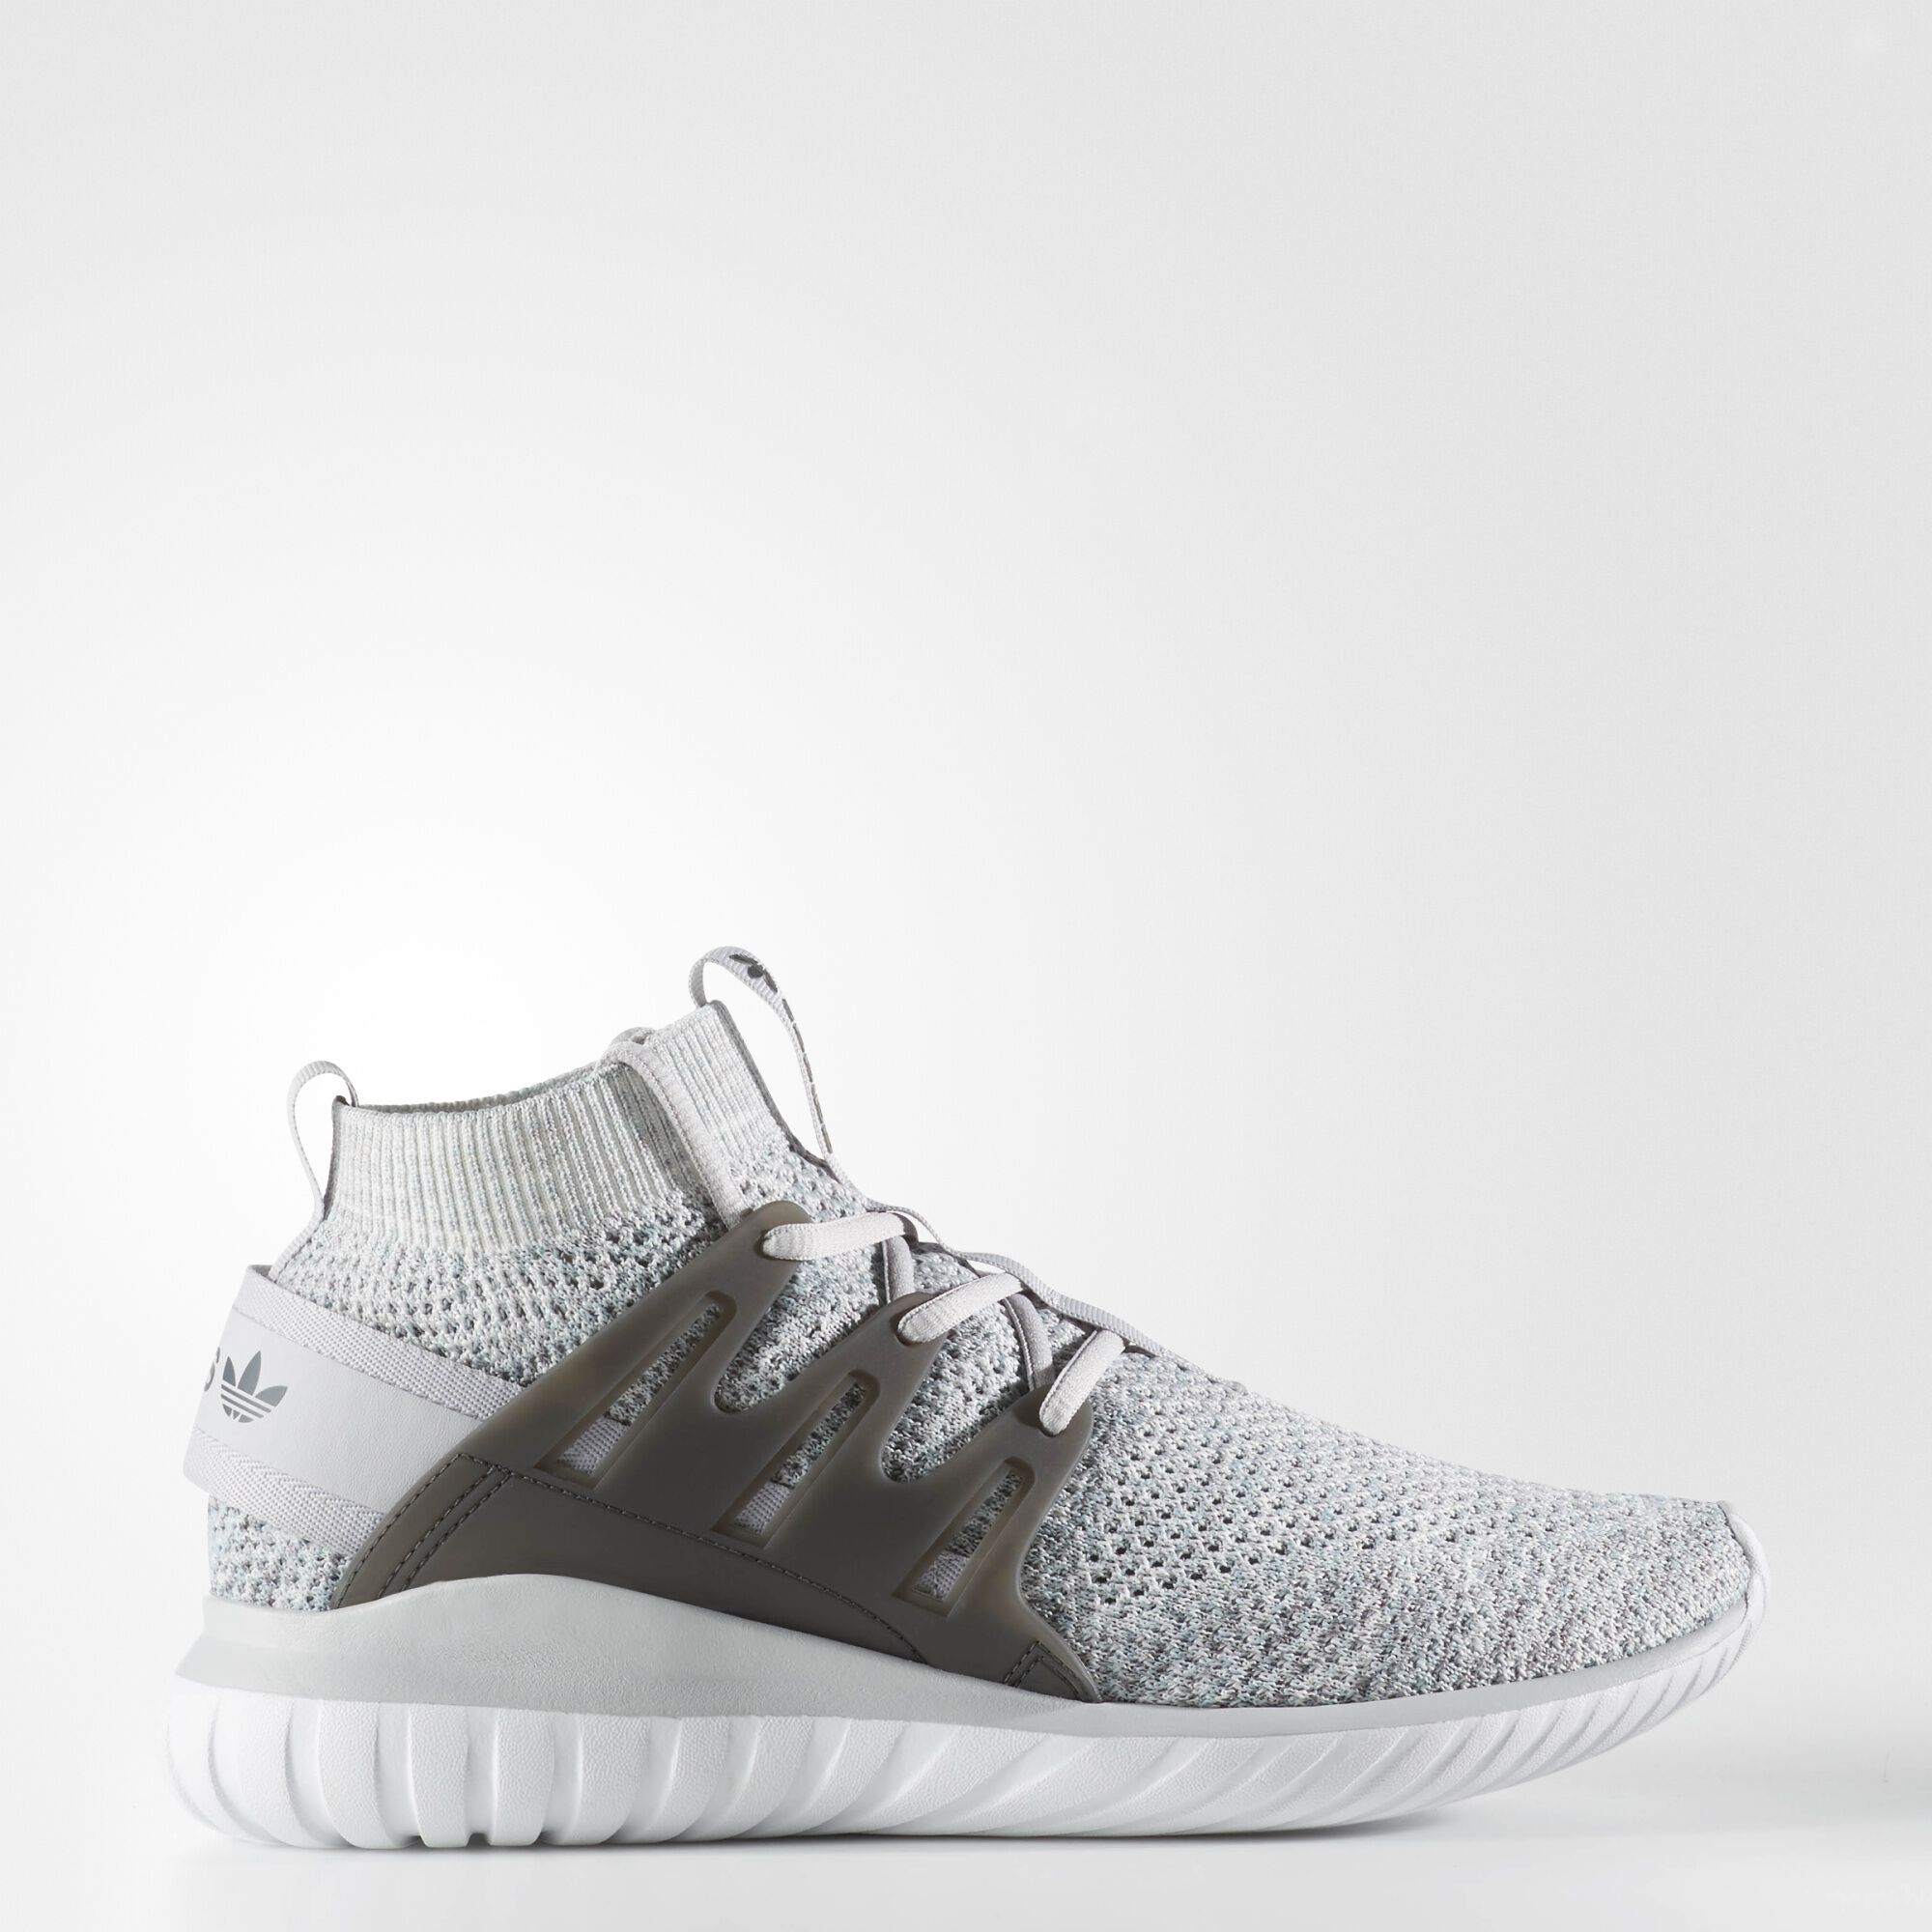 Infant \\ u0026 Toddler Tubular adidas US